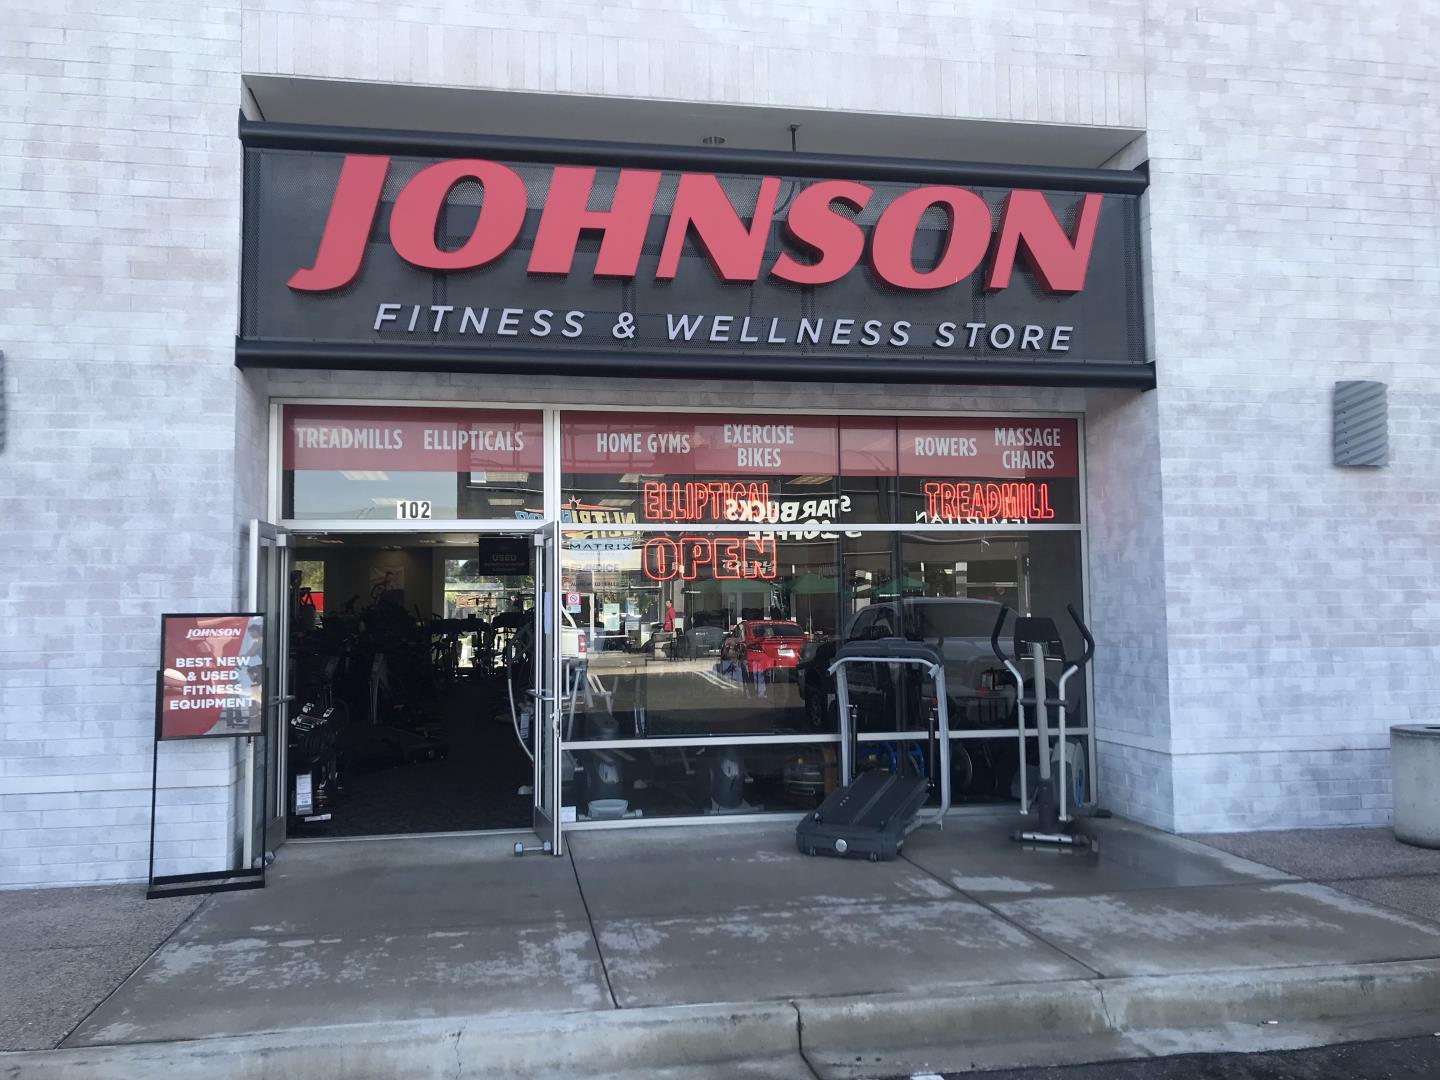 Johnson Fitness & Wellness - Paradise Valley, AZ